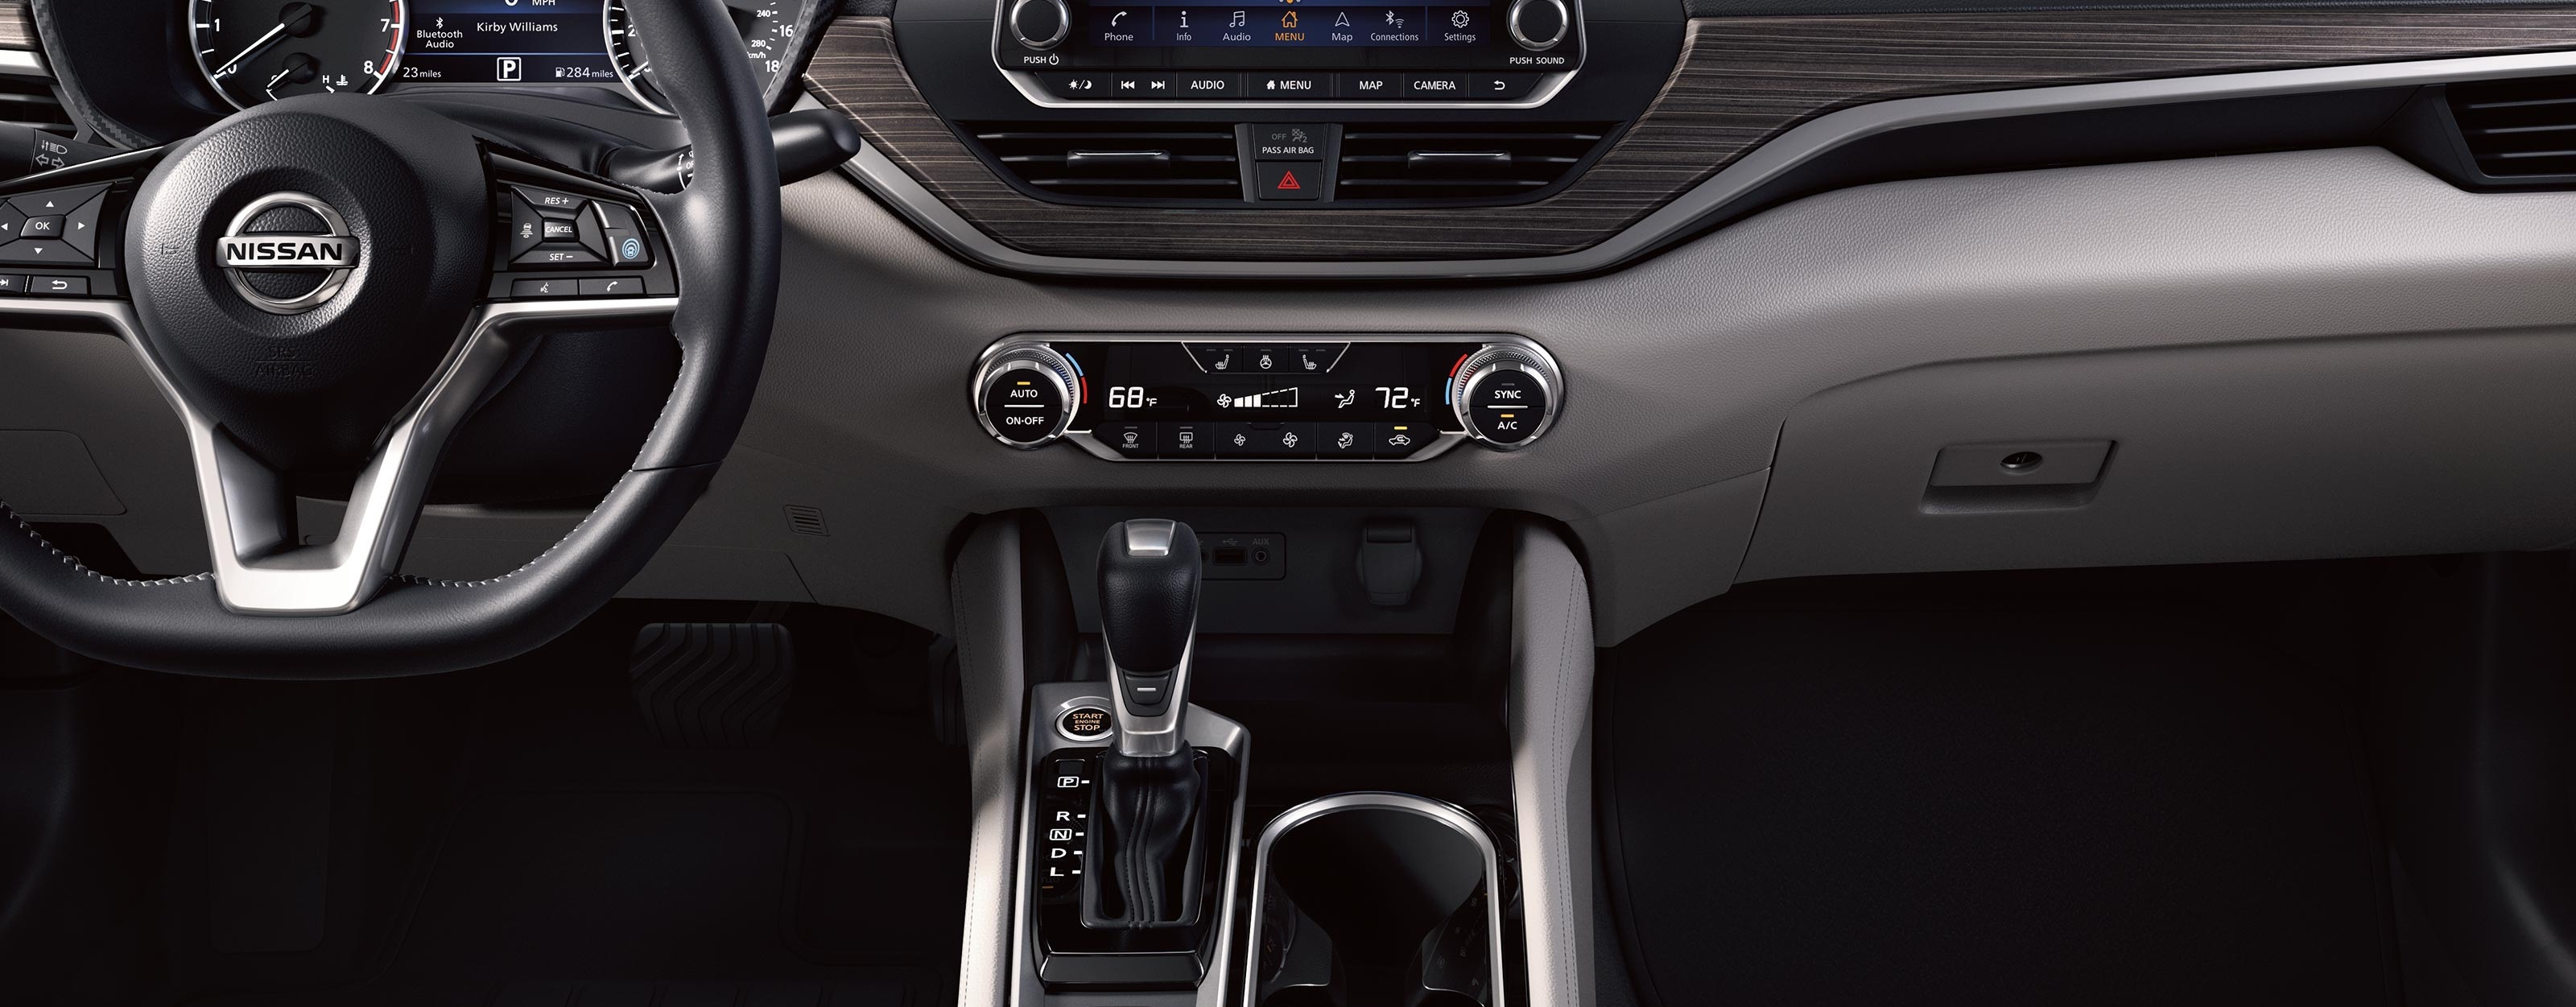 2020 Nissan Altima Cabin Features